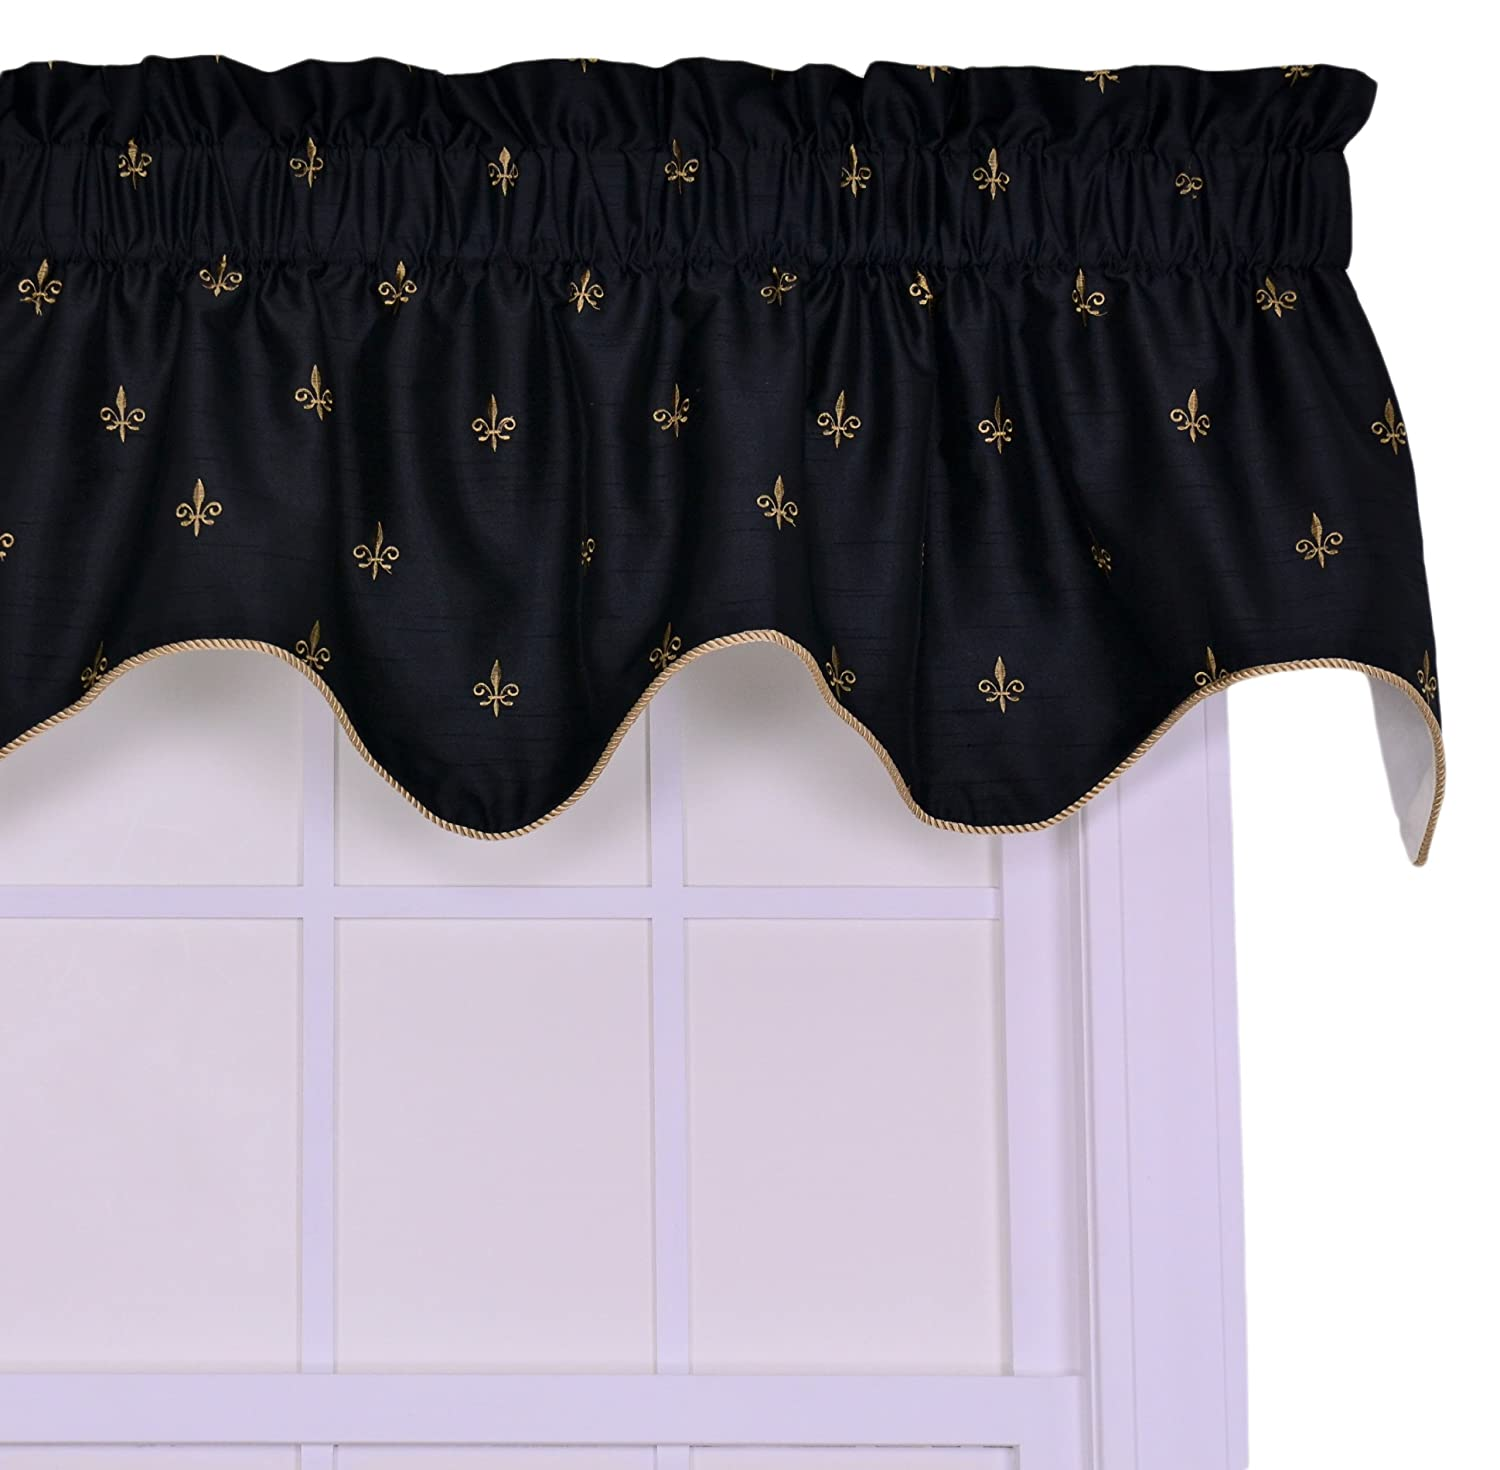 Ellis Curtain Fleur Di Lis Faux Silk Lined Duchess Filler Valance Window Curtain, Black